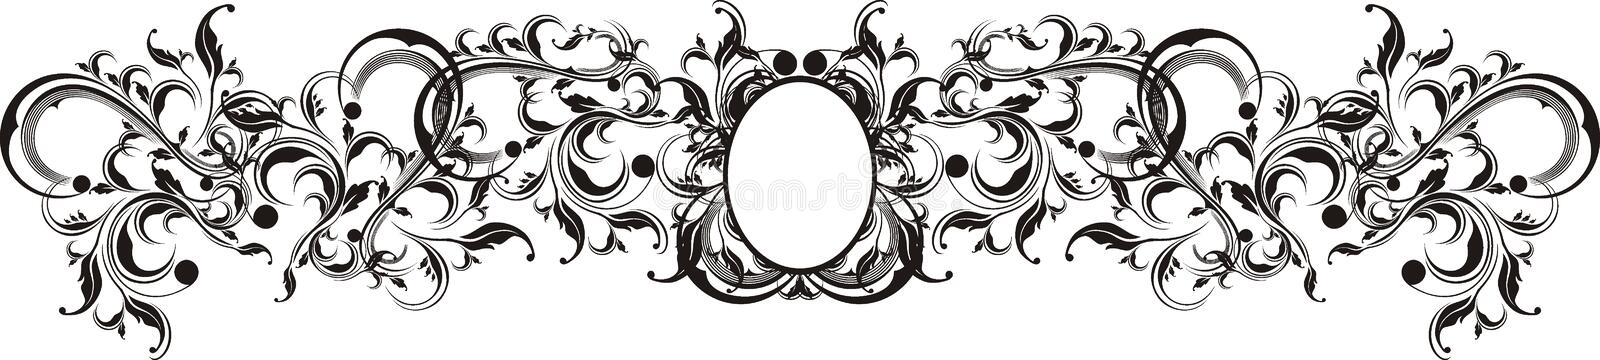 Download Vector ornaments frame stock vector. Illustration of design - 5945650